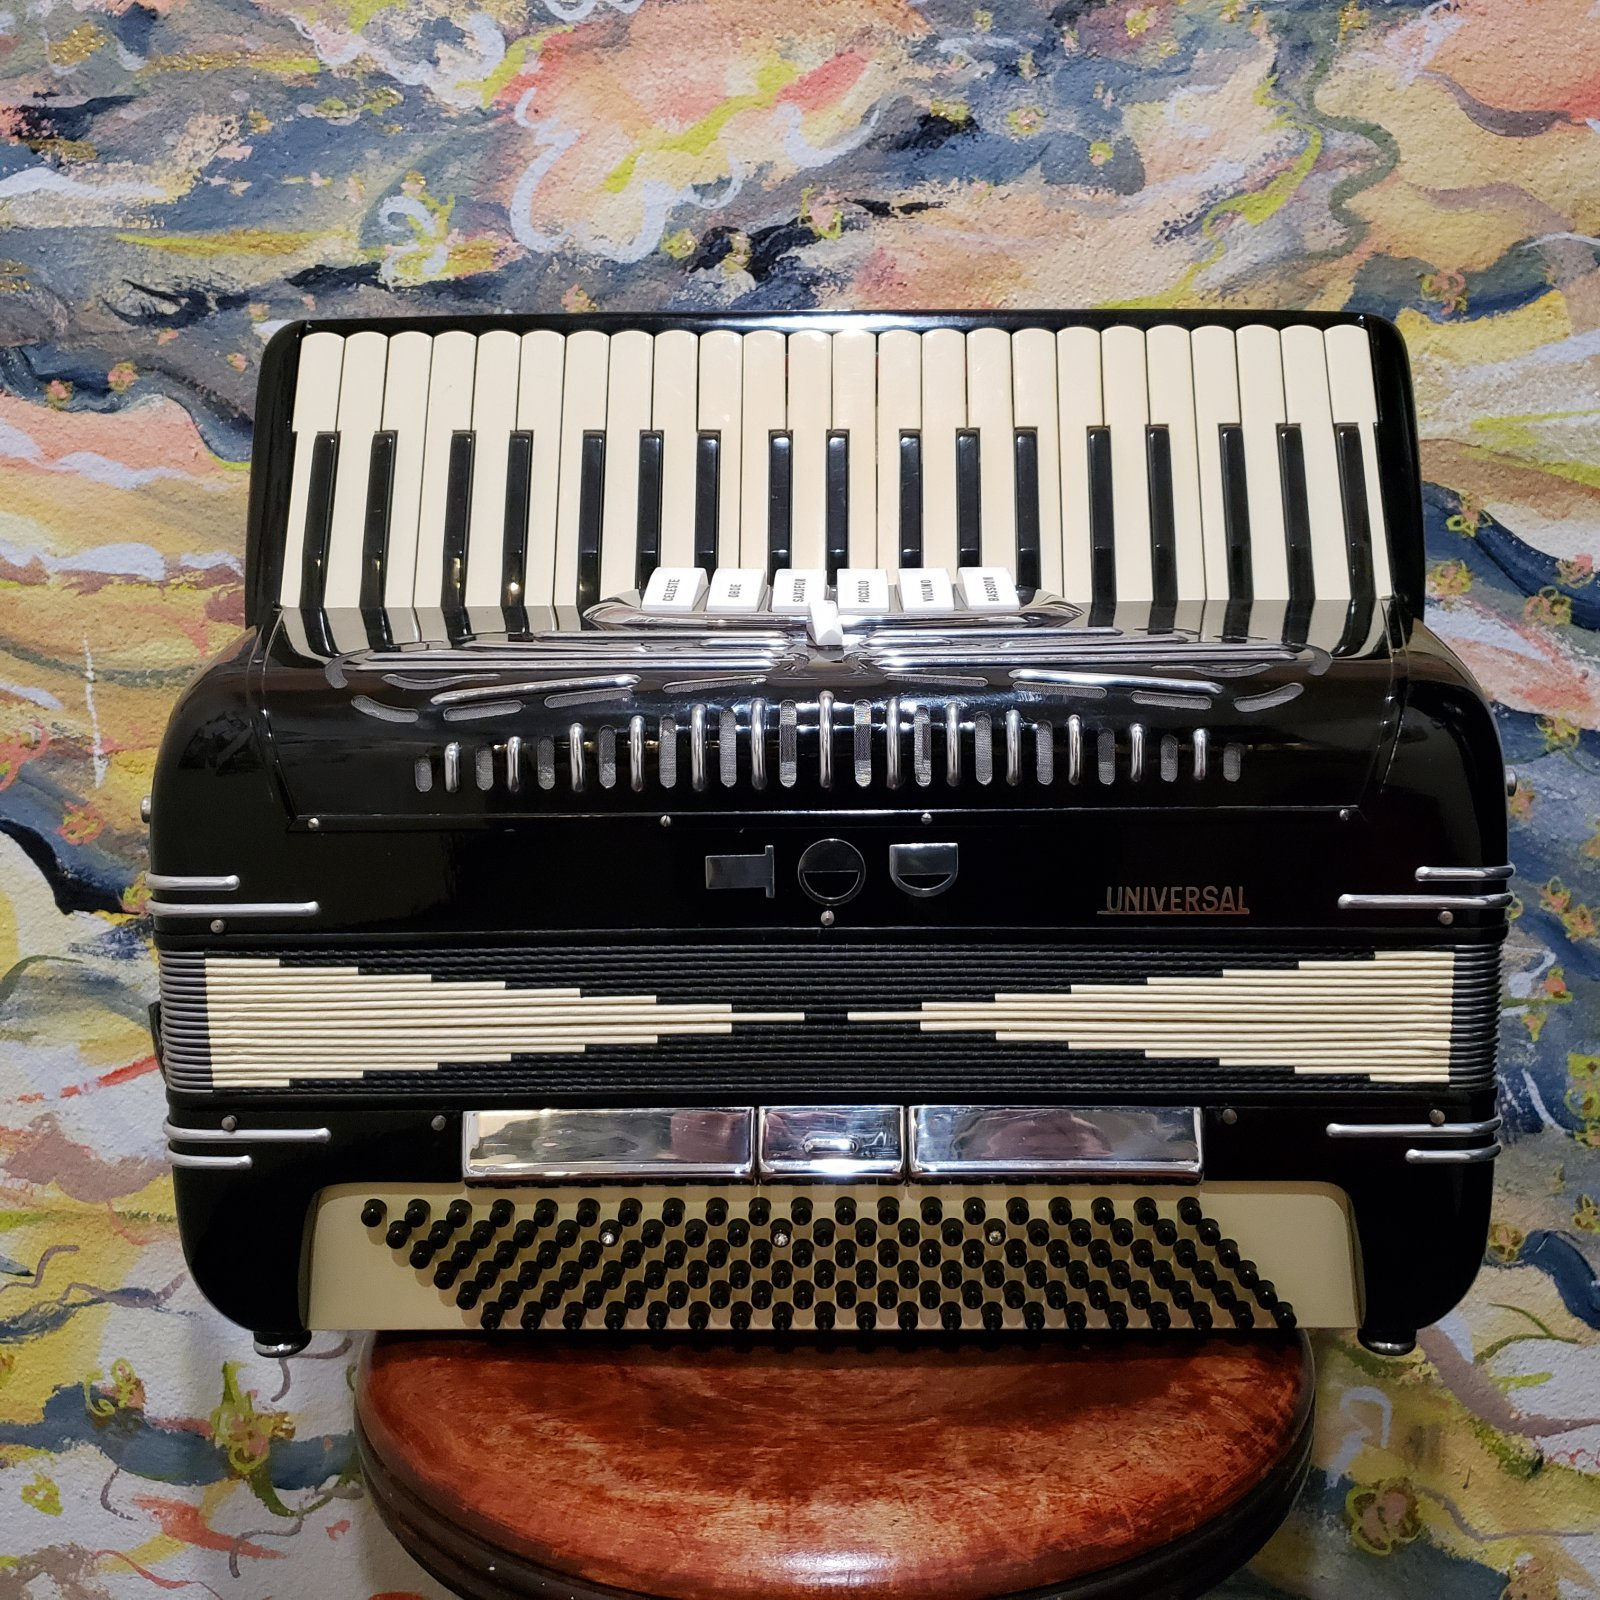 Universal Vintage Keyboard Accordion w/ Hardcase (Made in Italy)